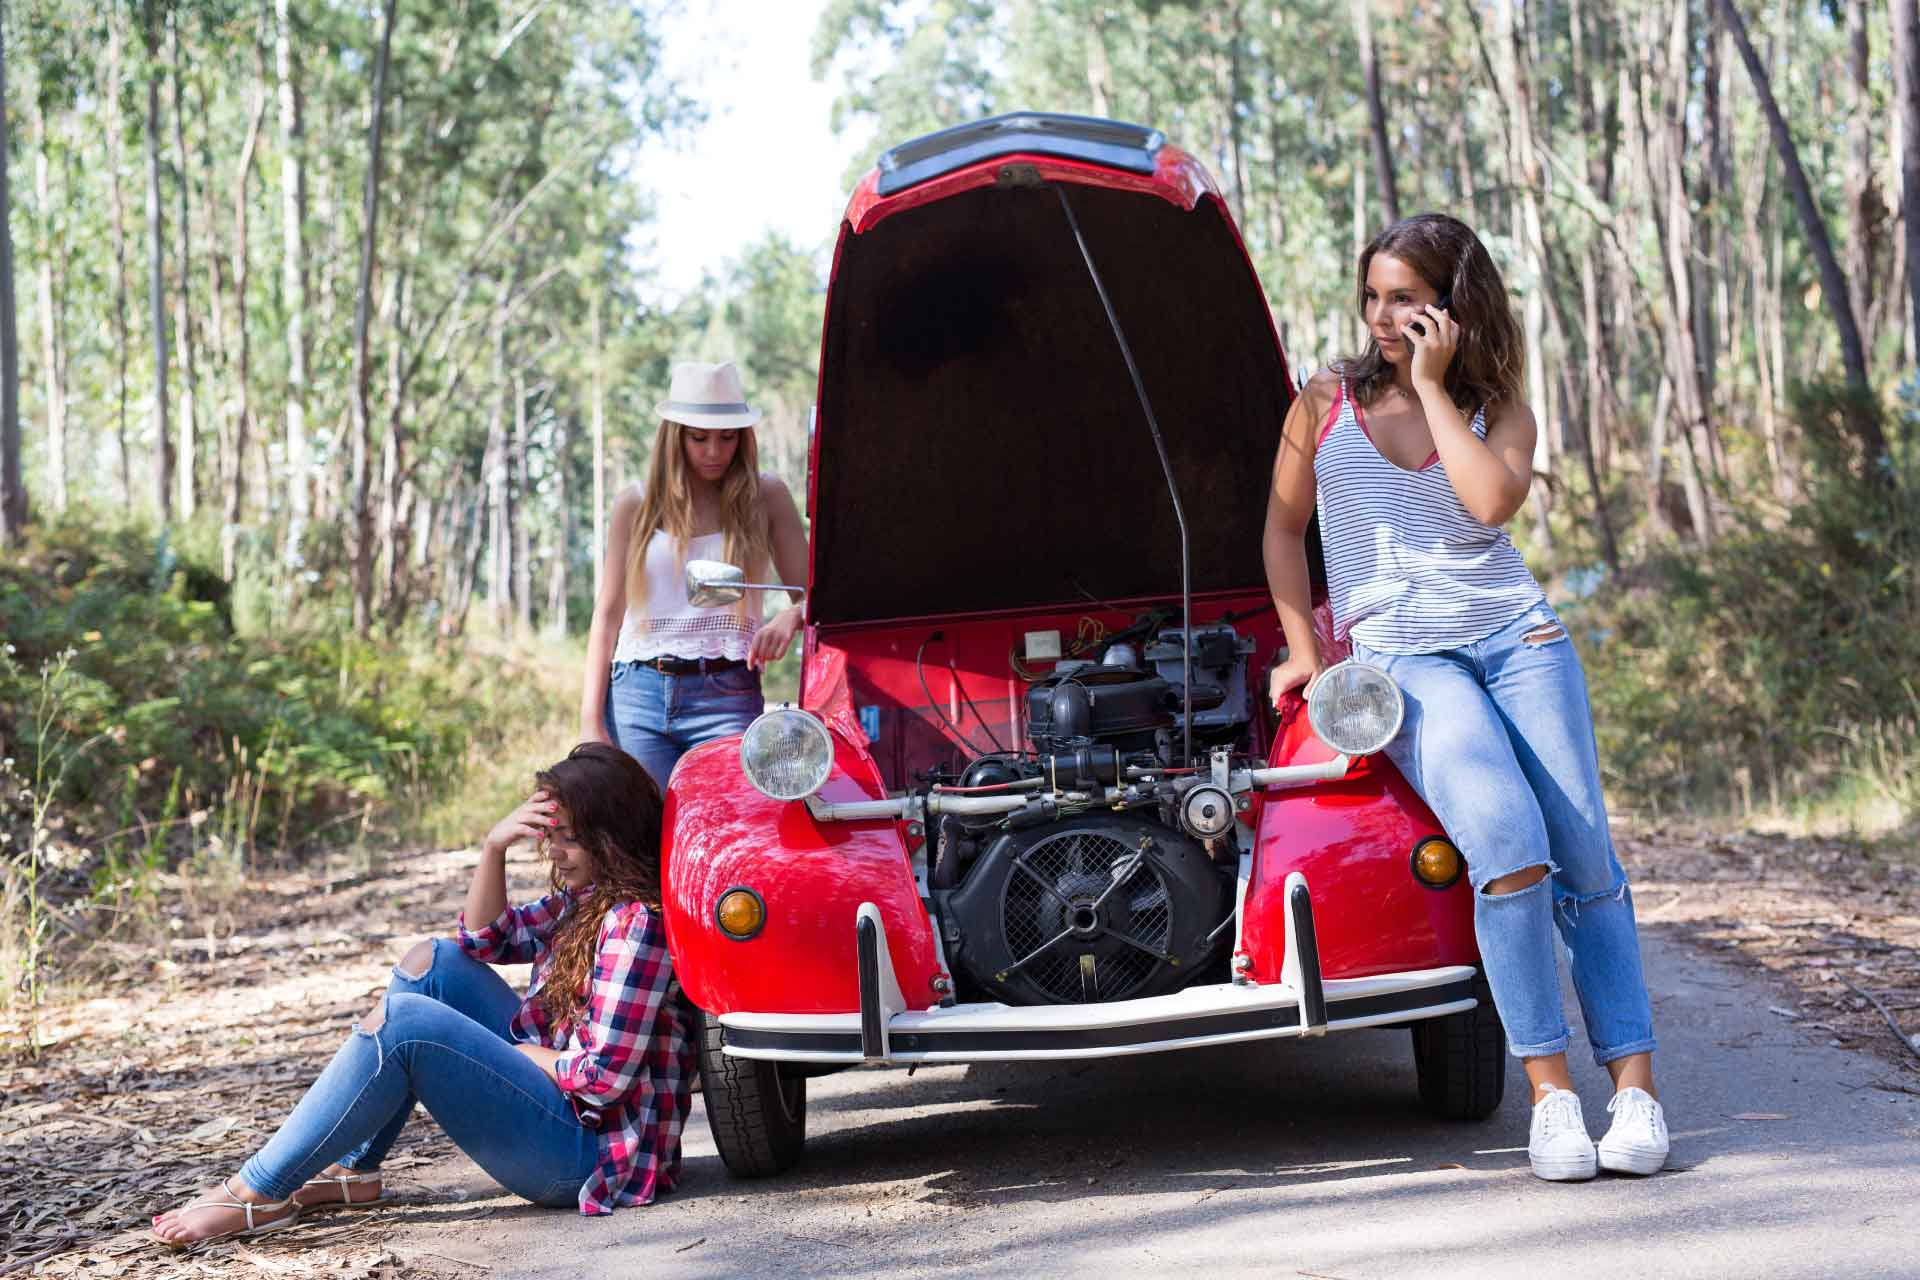 Contact auto towing service in Marshall, TX